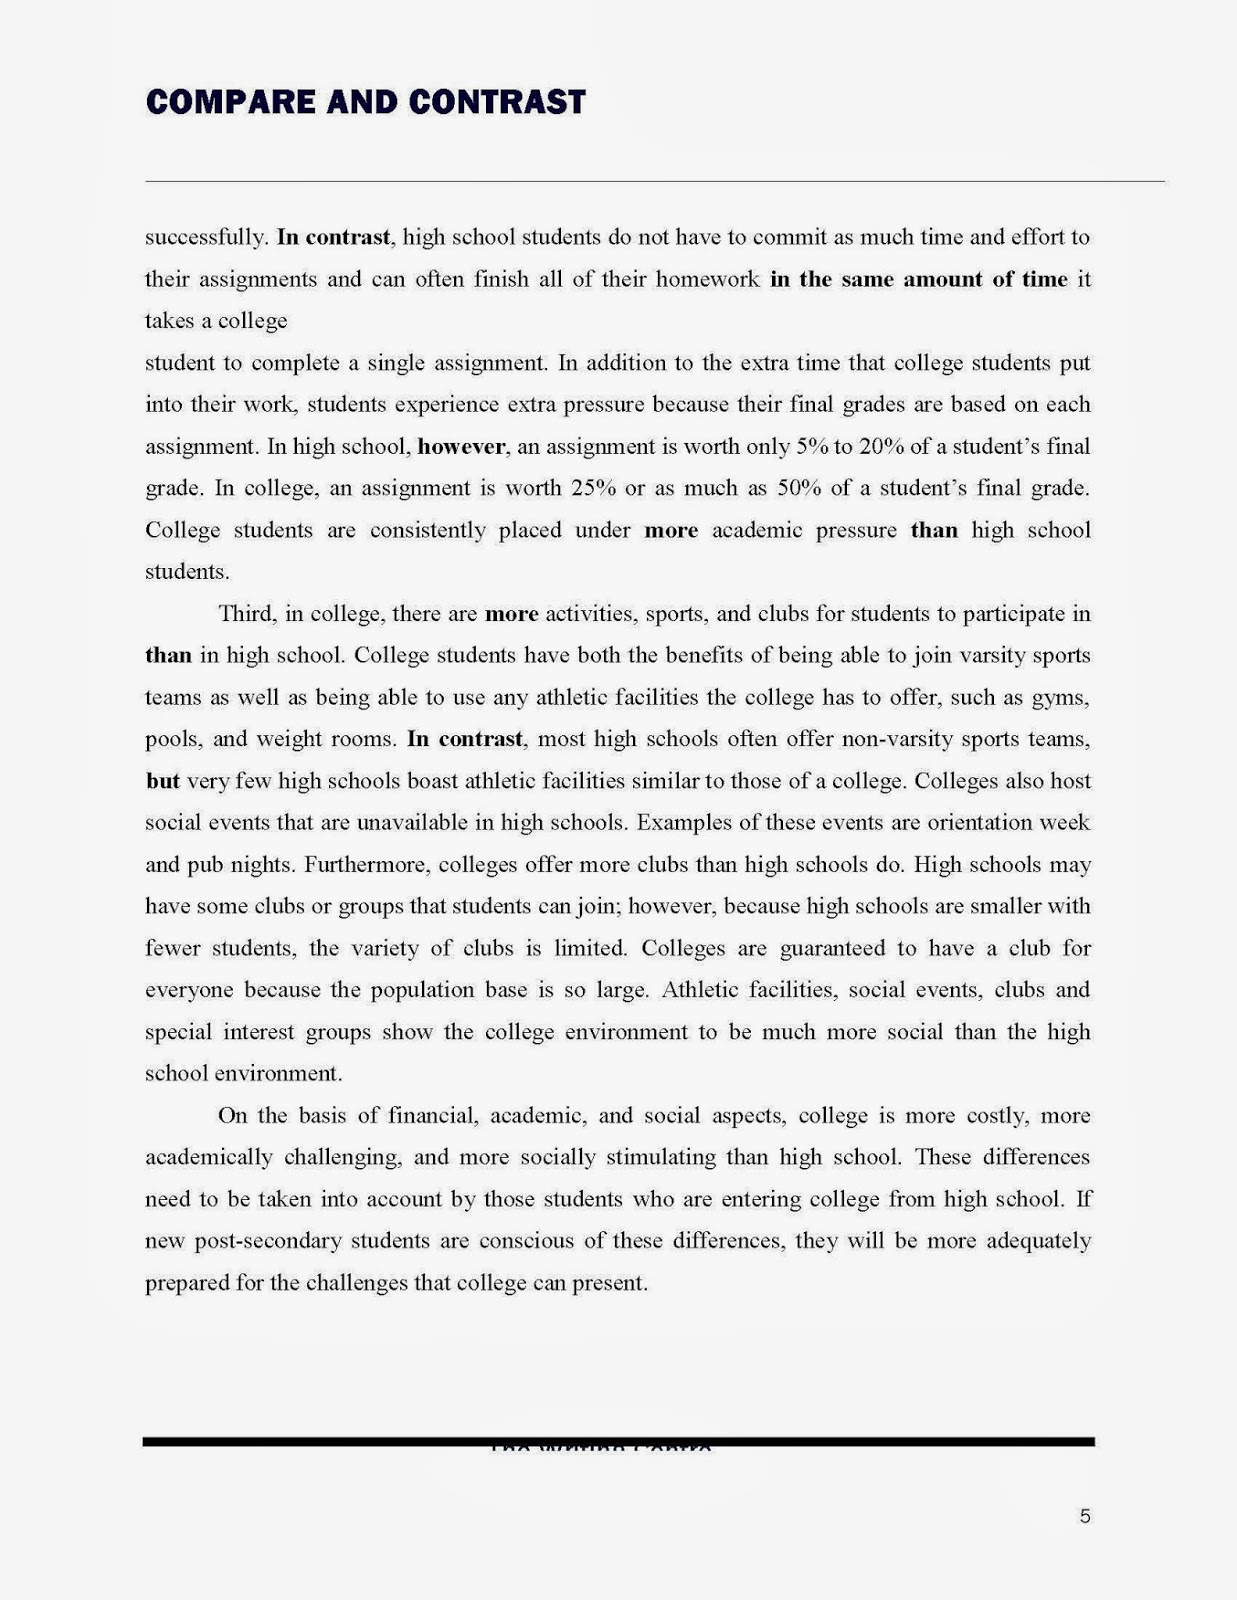 college vs high school essay compare and contrast written essay  essay on the giver by lois lowry essay on the book the giver by compare and